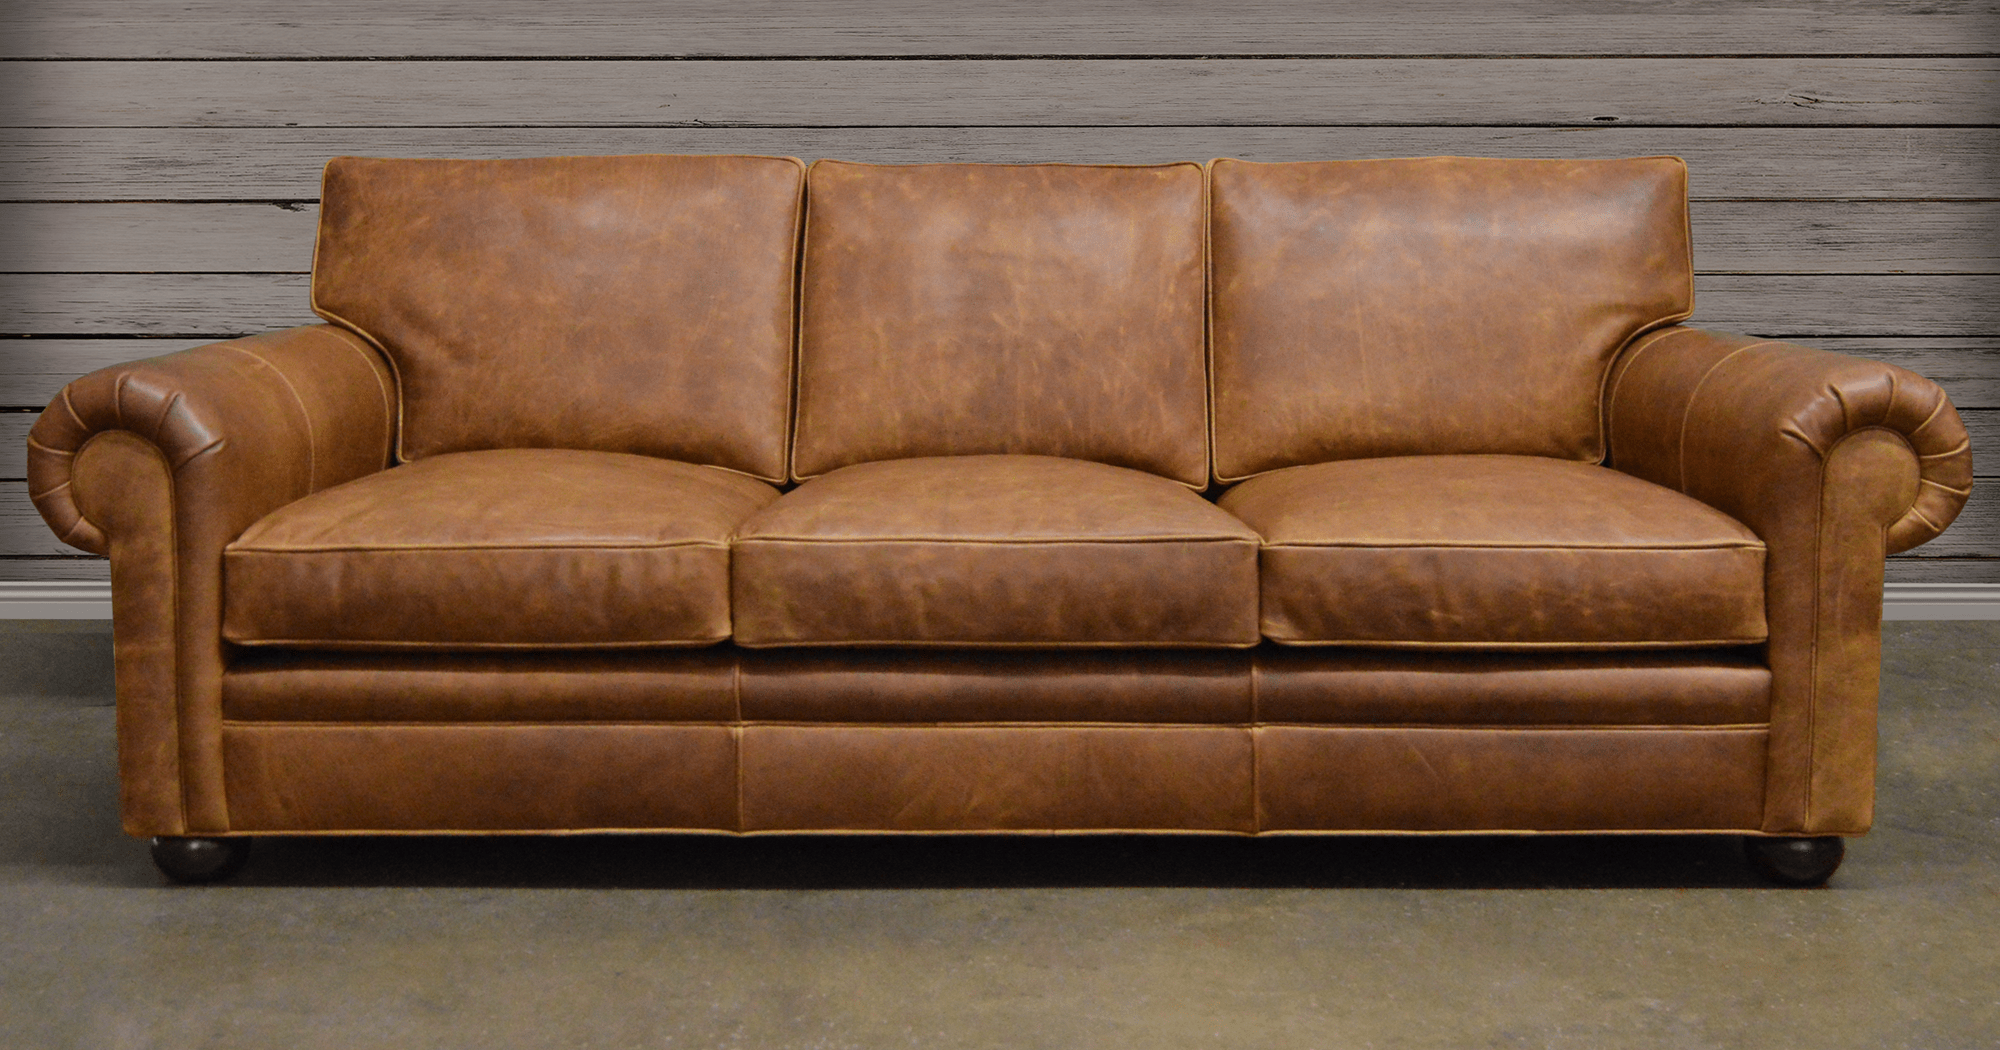 8 way hand tied sofa brands in canada sleeper sofas with air beds american made leather furniture chairs langston italian brentwood tan